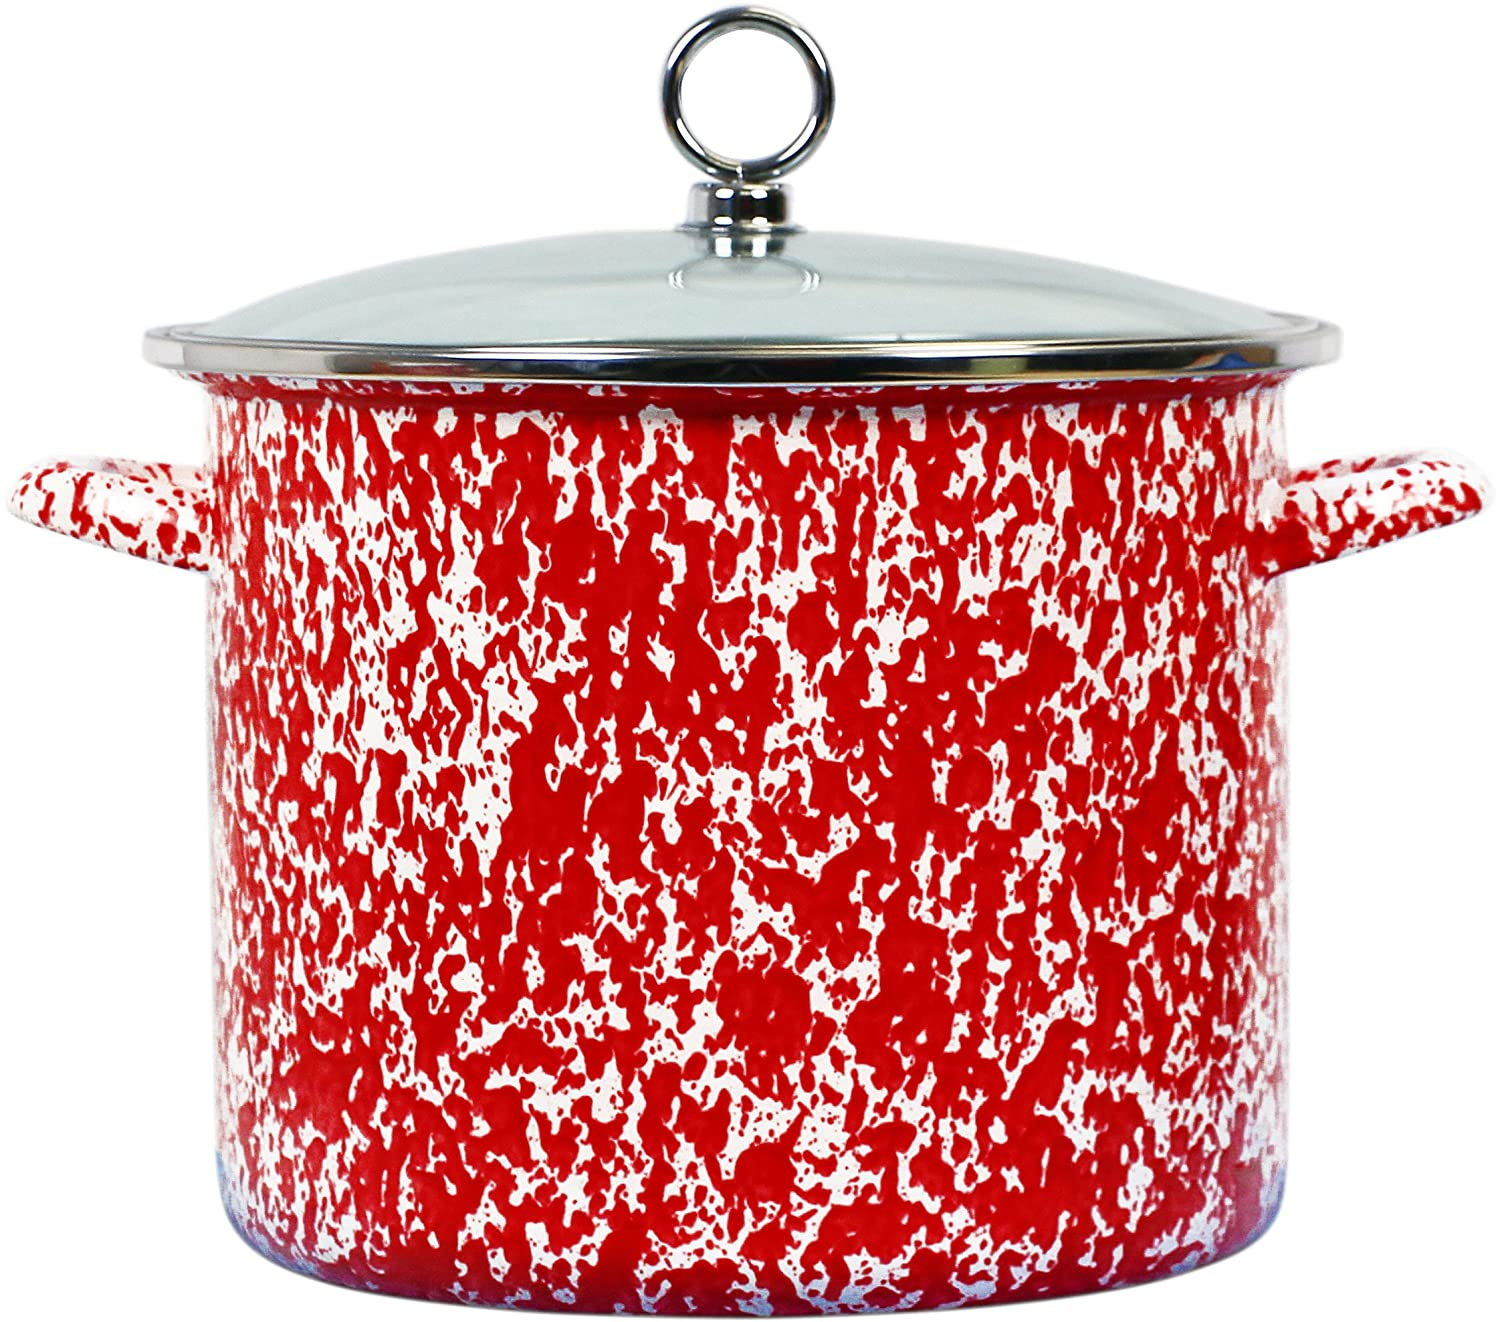 Calypso Basics by Reston Lloyd Vintage Marble Enamel on Steel Stockpot with Glass Lid, 1.5-Quart, Lime 59891